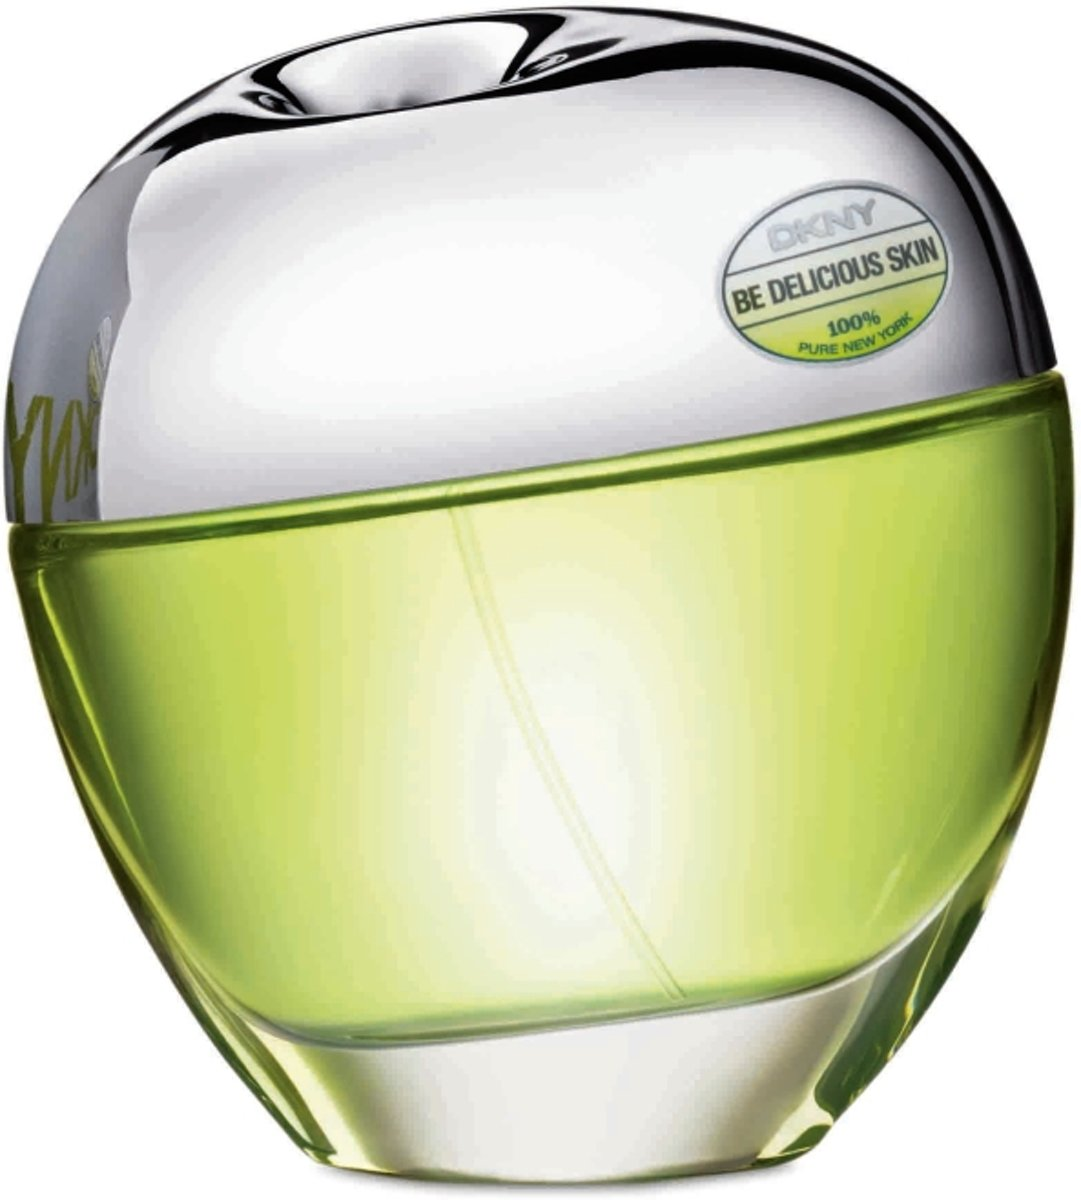 DKNY BE DELICIOUS SKIN - 50ML - Eau de toilette